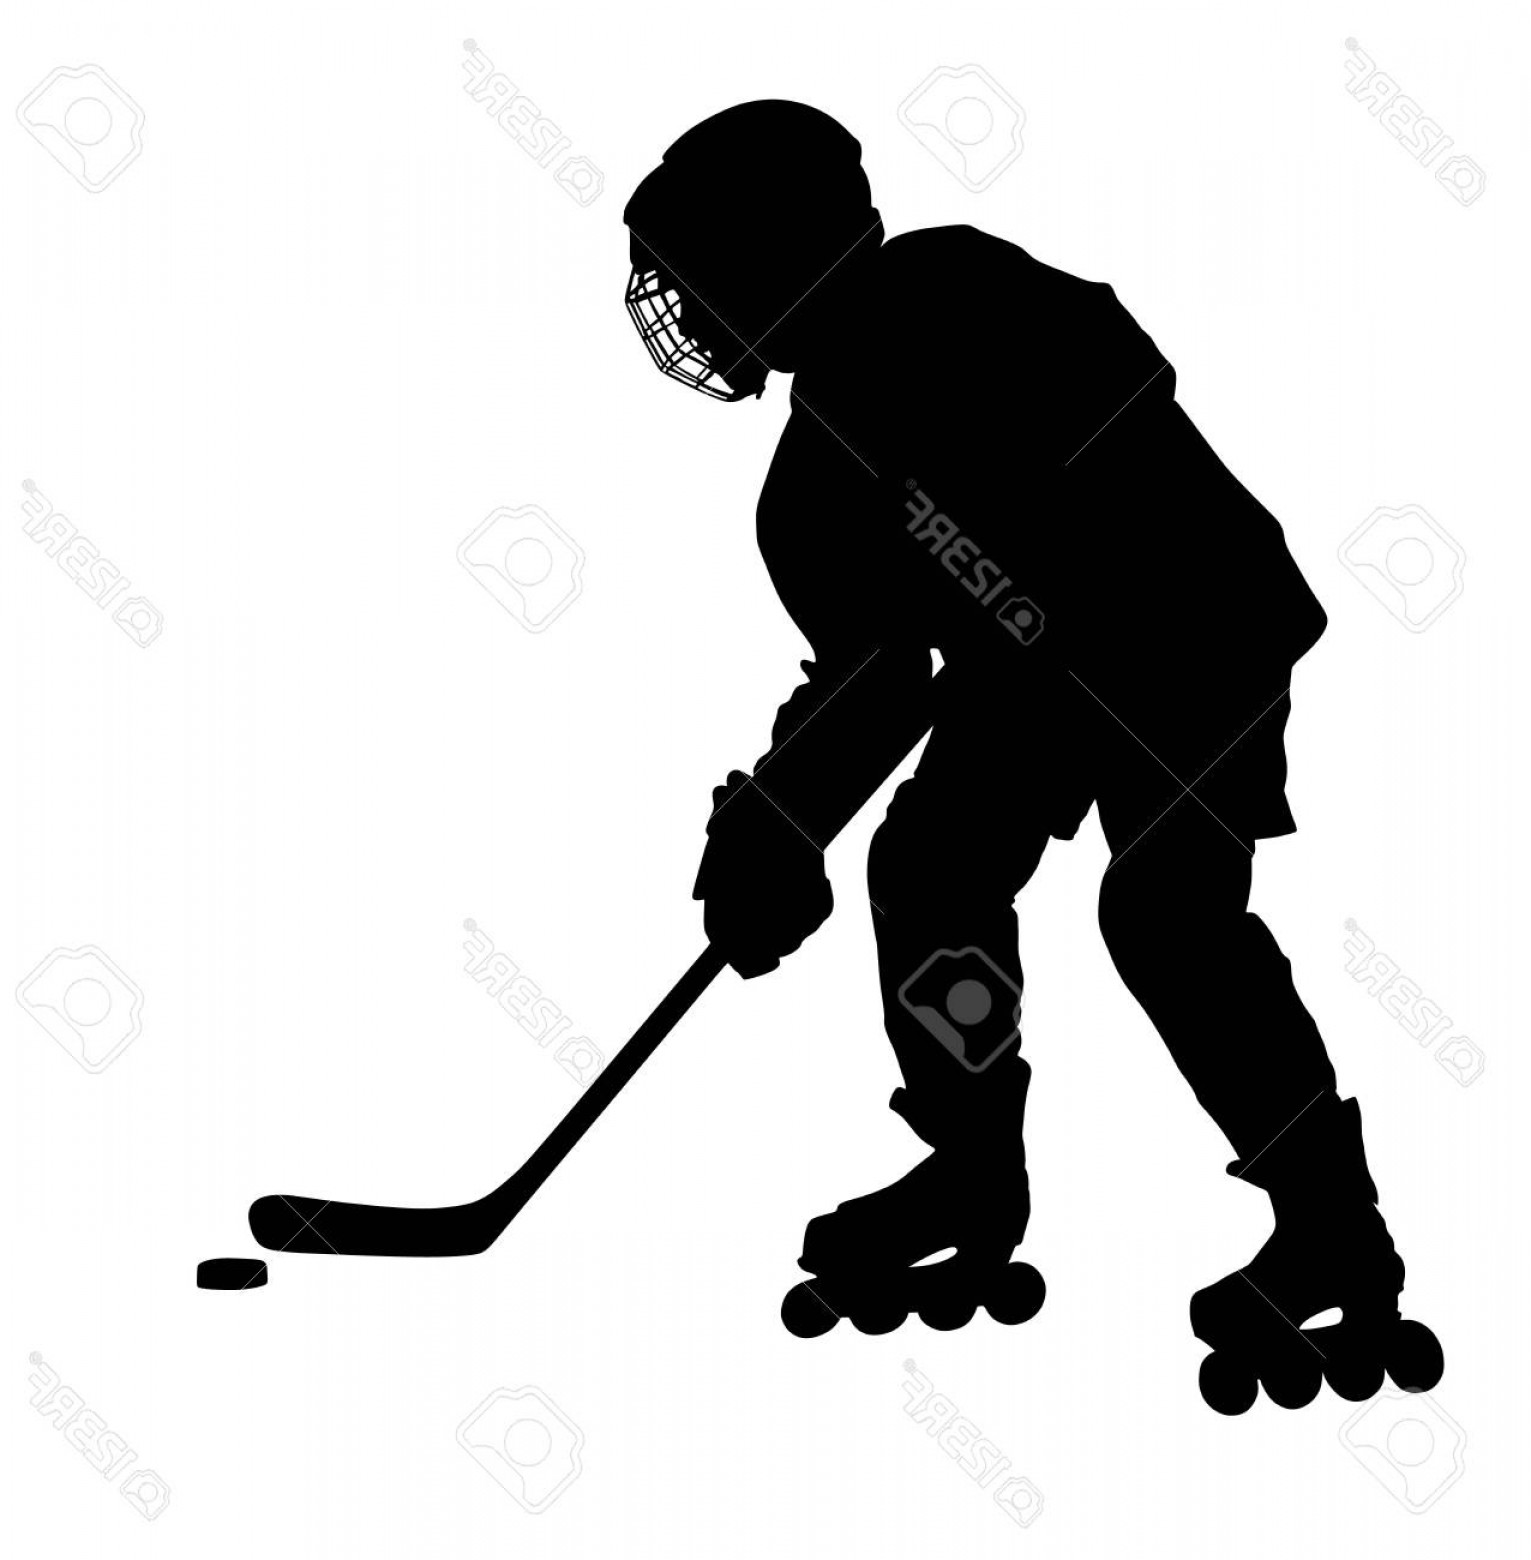 Hockey Player Silhouette Vector: Photostock Vector Vector Hockey Player Silhouette With Stick And A Washer Shoots The Puck And Attacks Vector Skating O